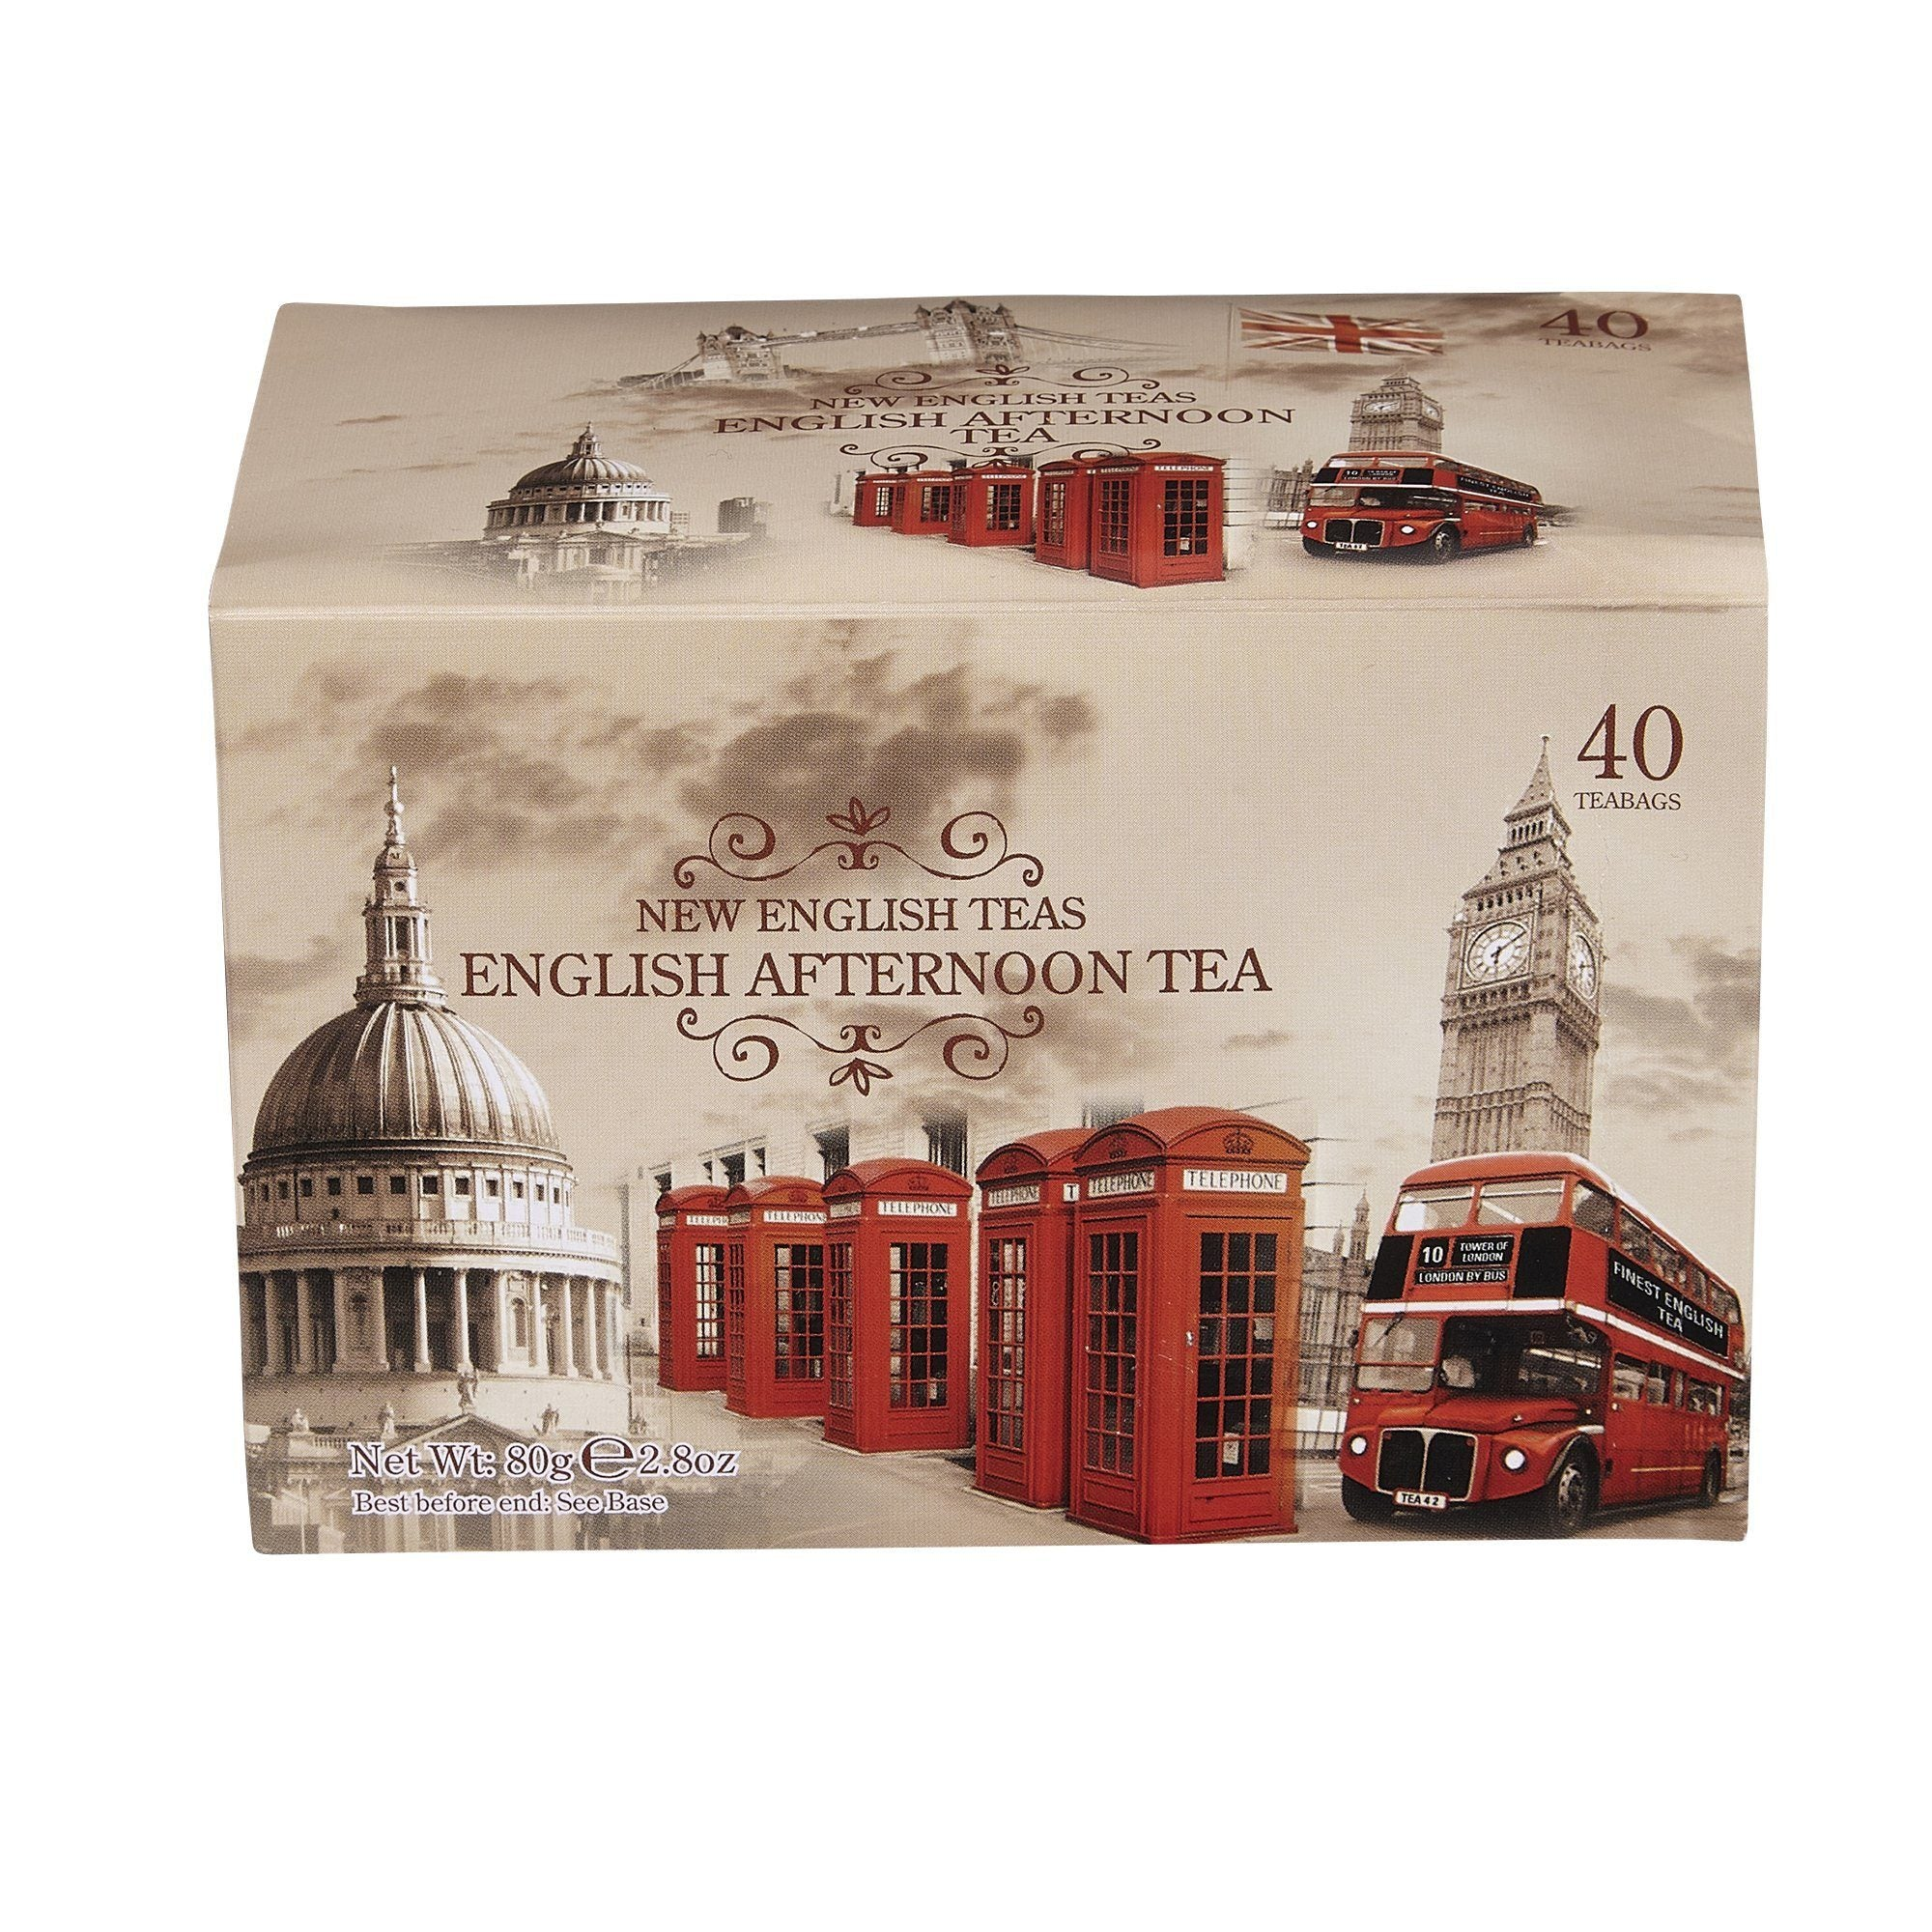 Vintage English Afternoon Tea 40 Teabag Carton Black Tea New English Teas